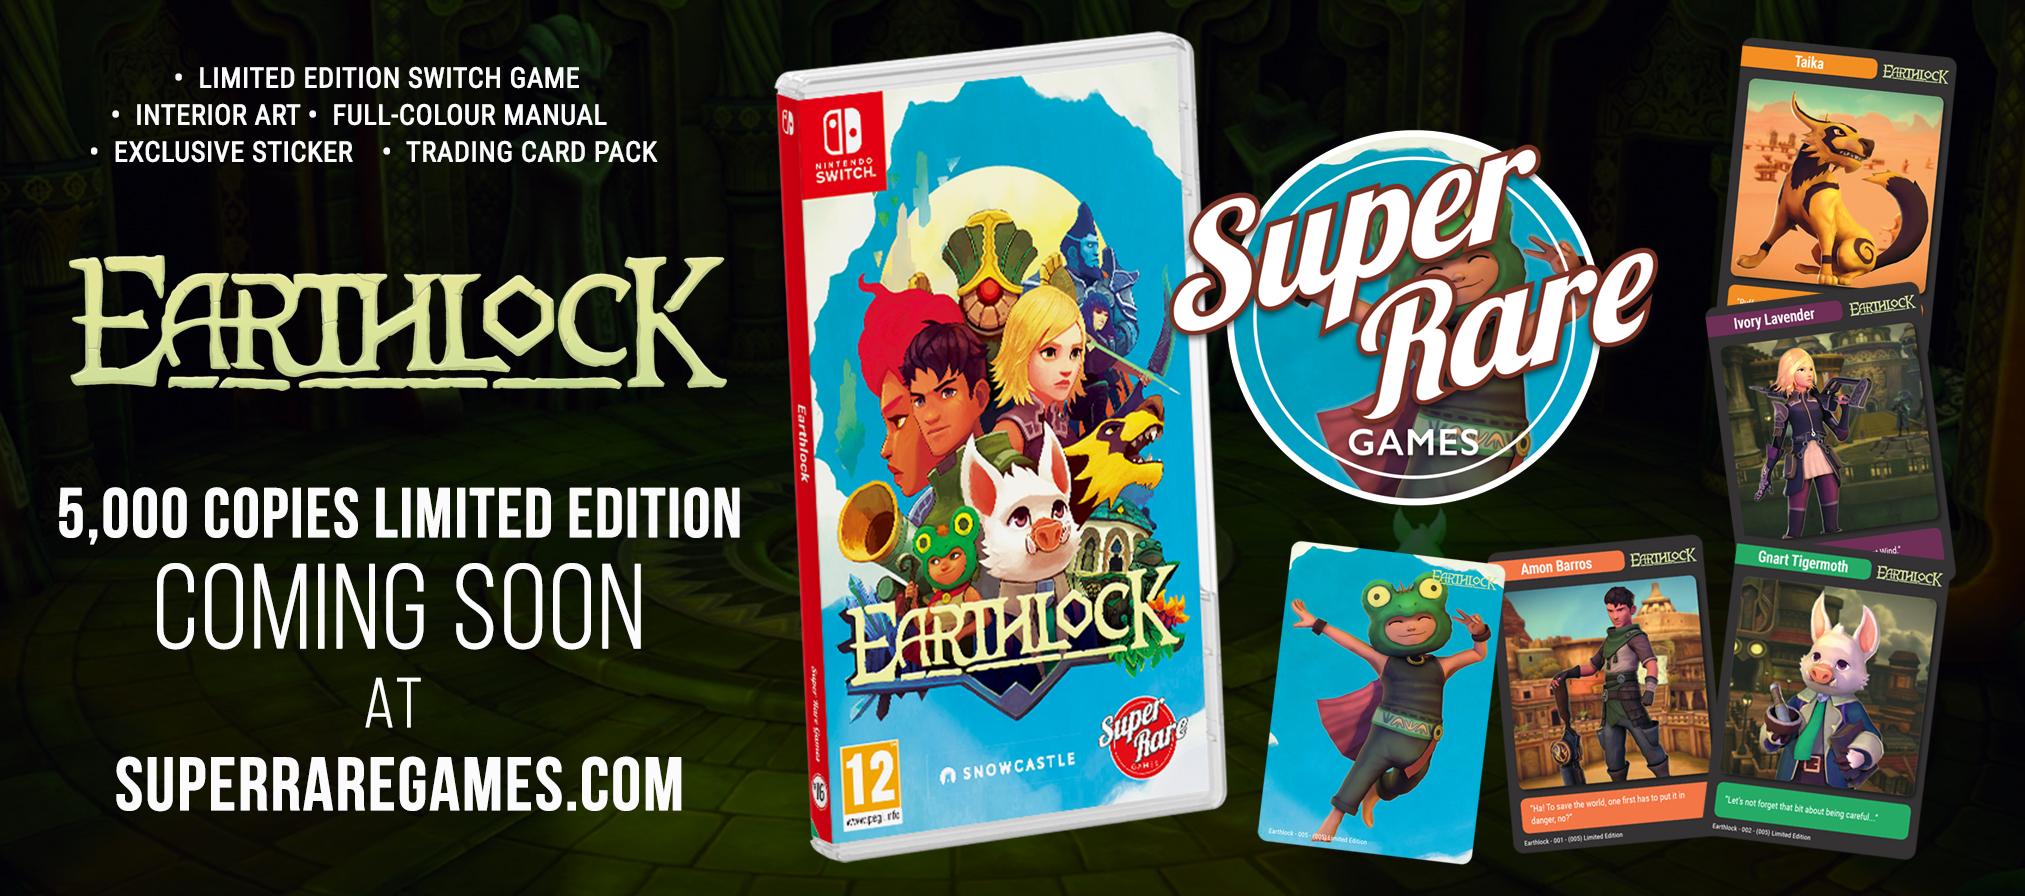 Super Rare Games' retail release of Earthlock will be available to preorder on May 16th, 2019